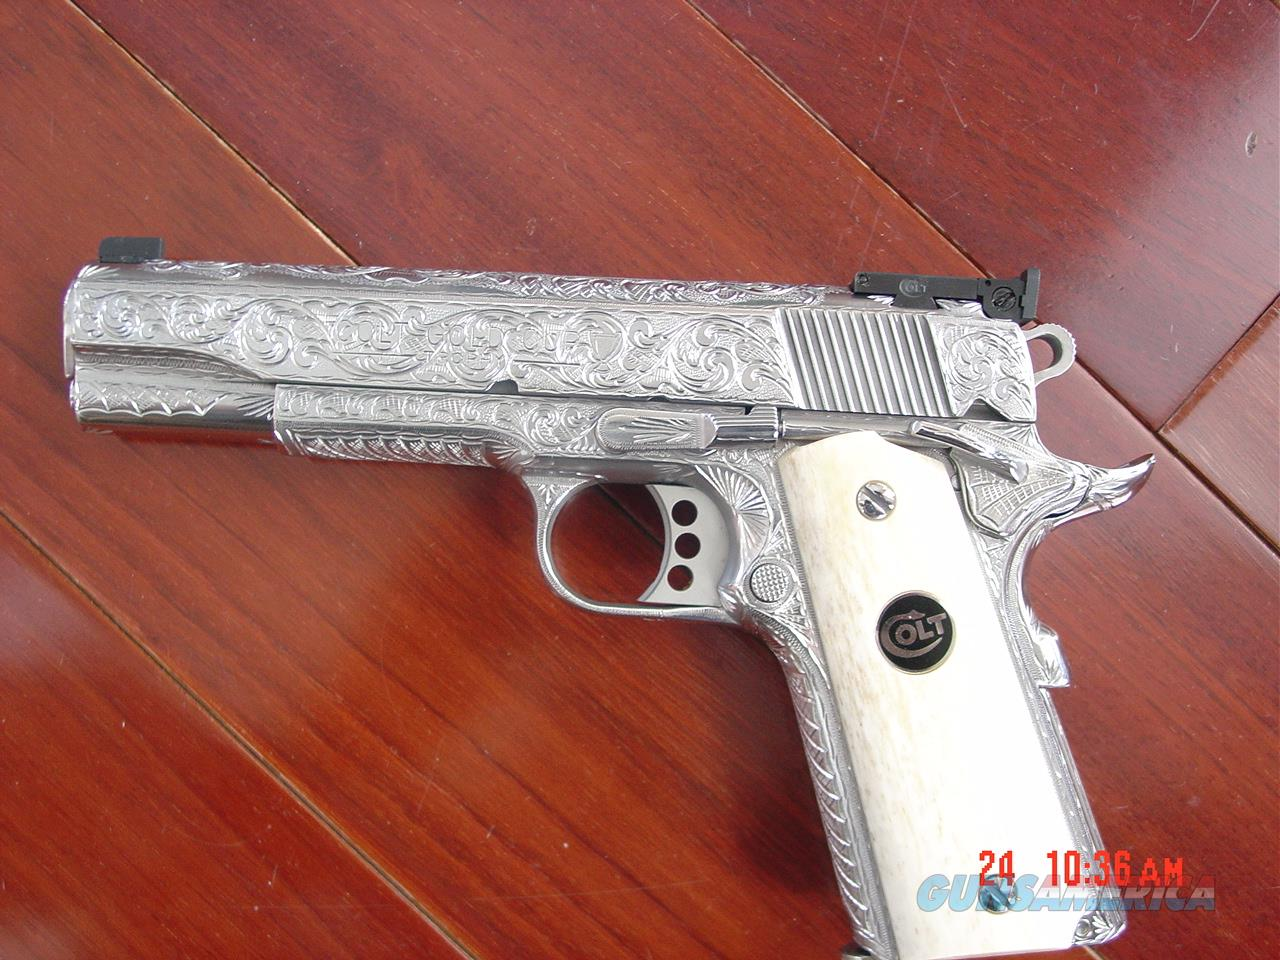 Colt Gold Cup Trophy 45,fully deep hand engraved by Flannery Engraving,real Giraffe bone grips,2 mags,certificate,etc.never fired. awesome 1 of a kind work of art !!  Guns > Pistols > Colt Automatic Pistols (1911 & Var)